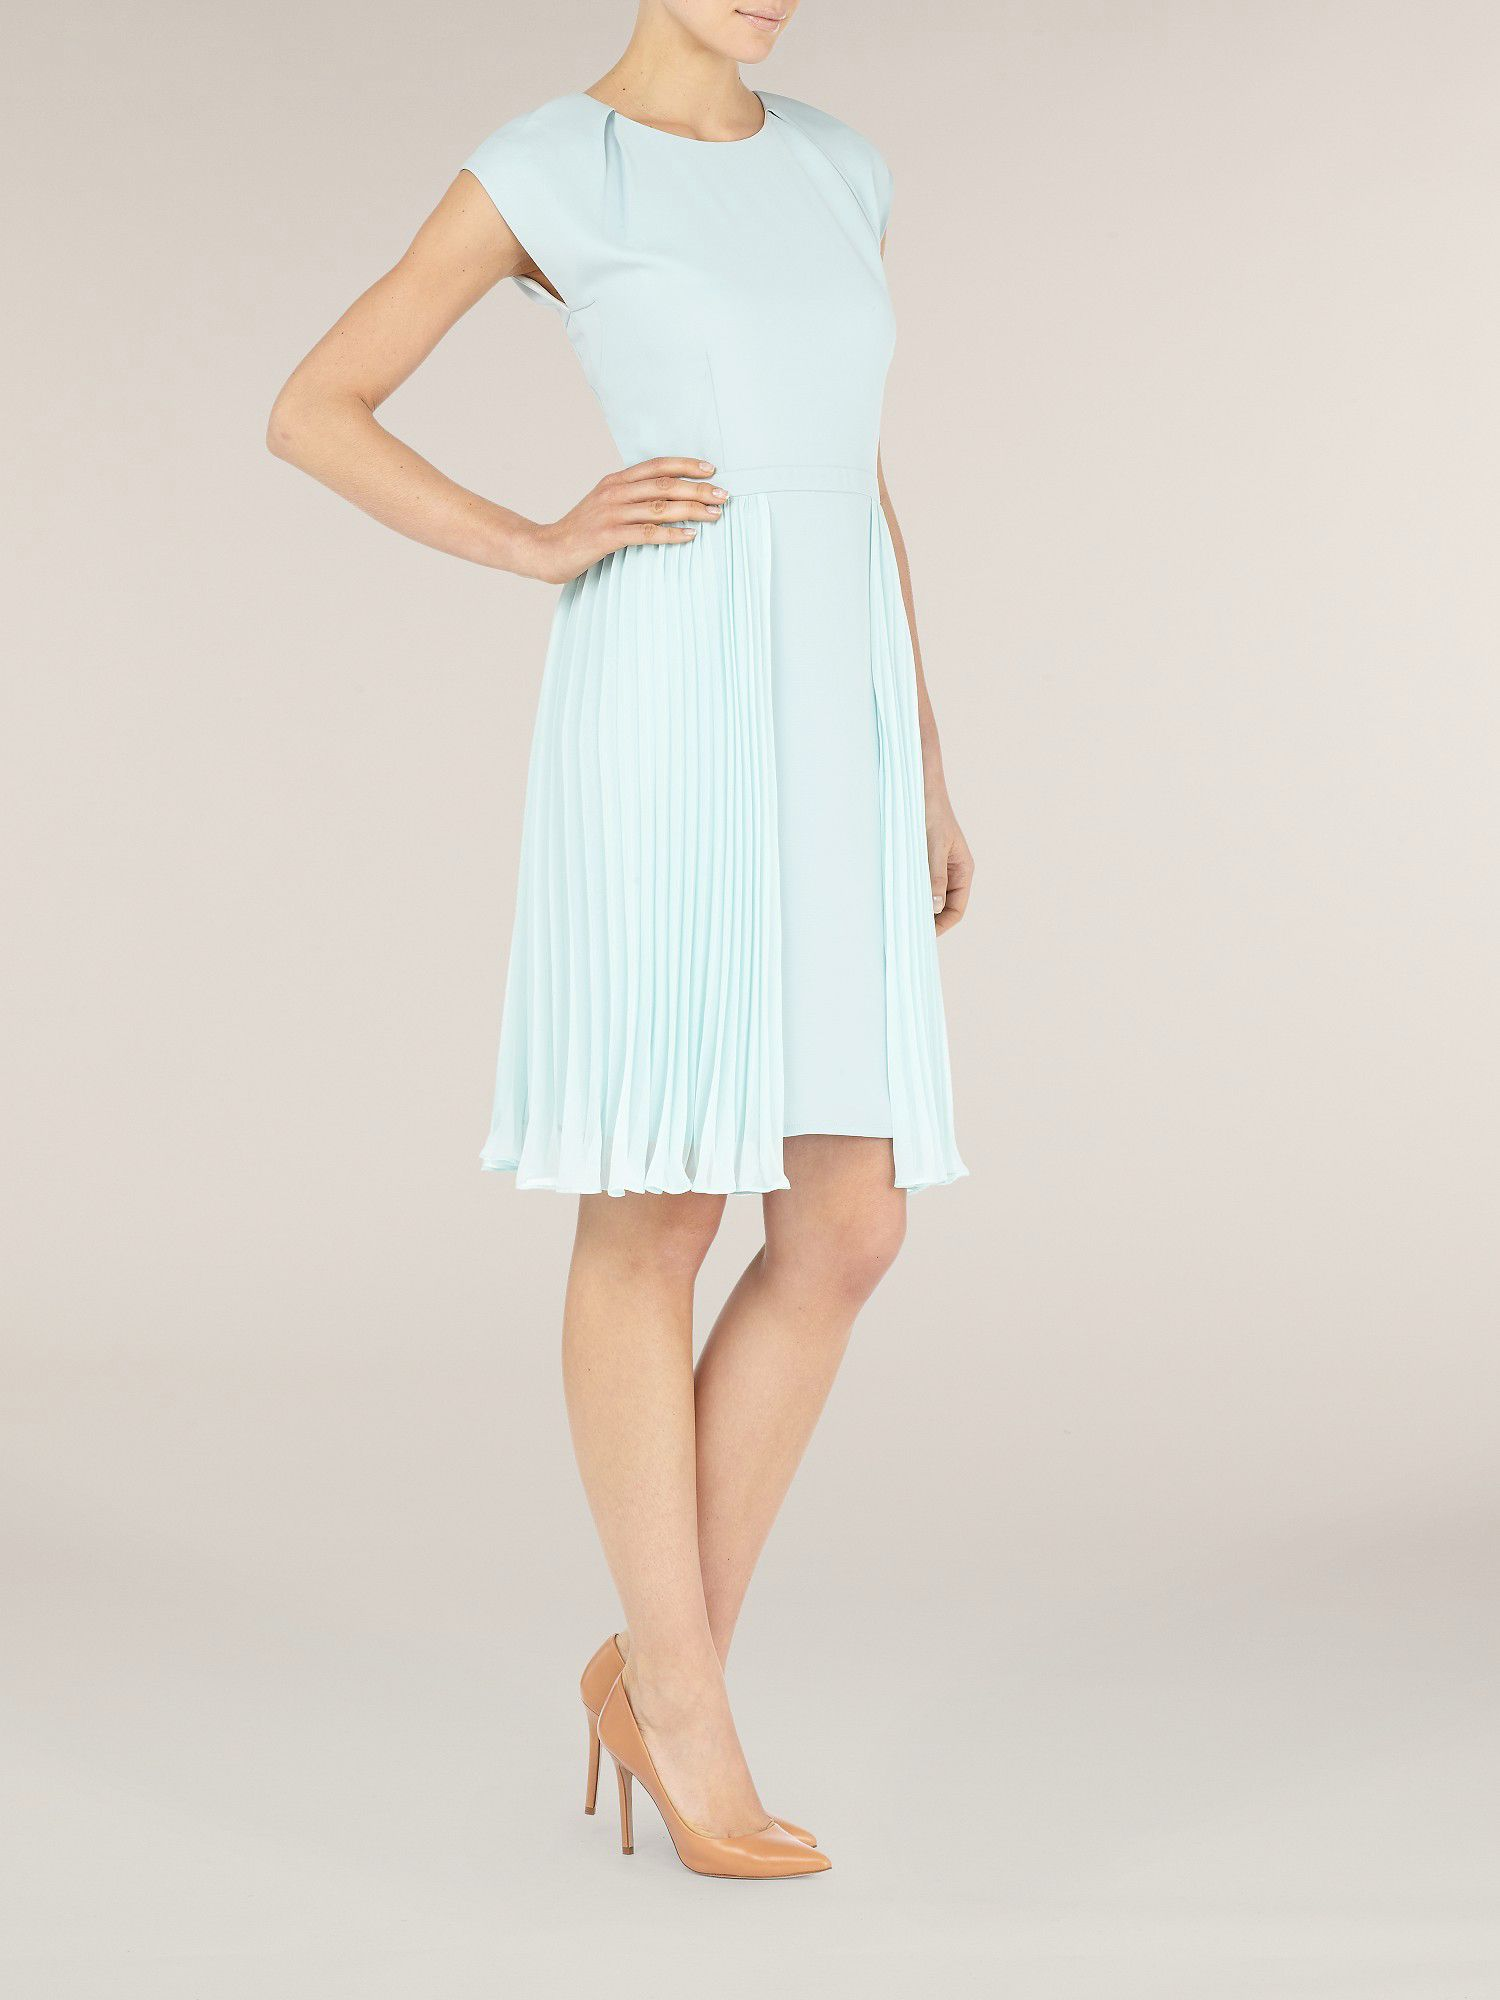 Duck egg blue pleated skirt dress